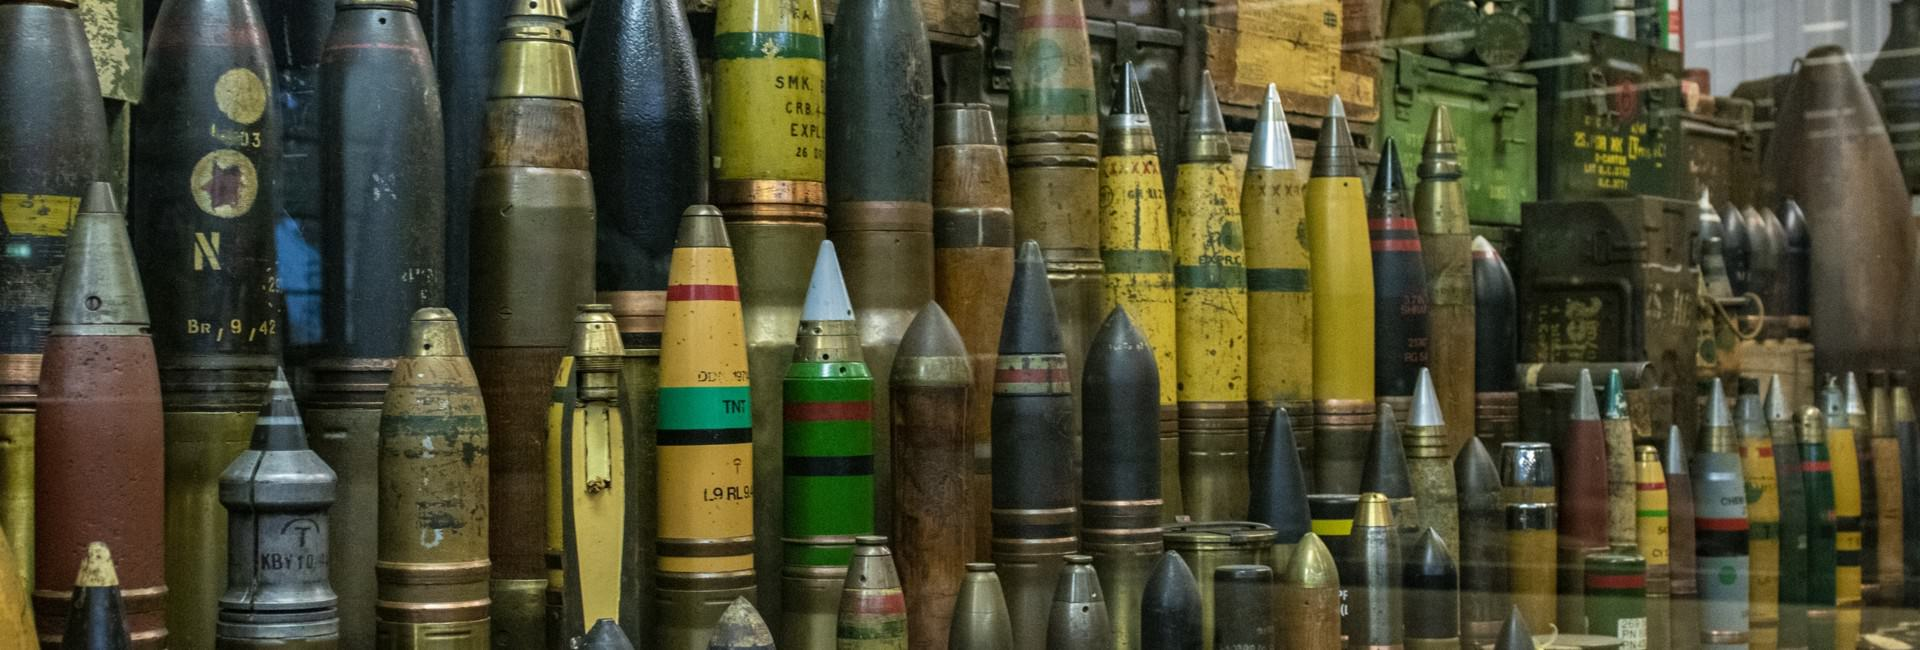 oorlogsmuseum - 1000 Bombs and Grenades